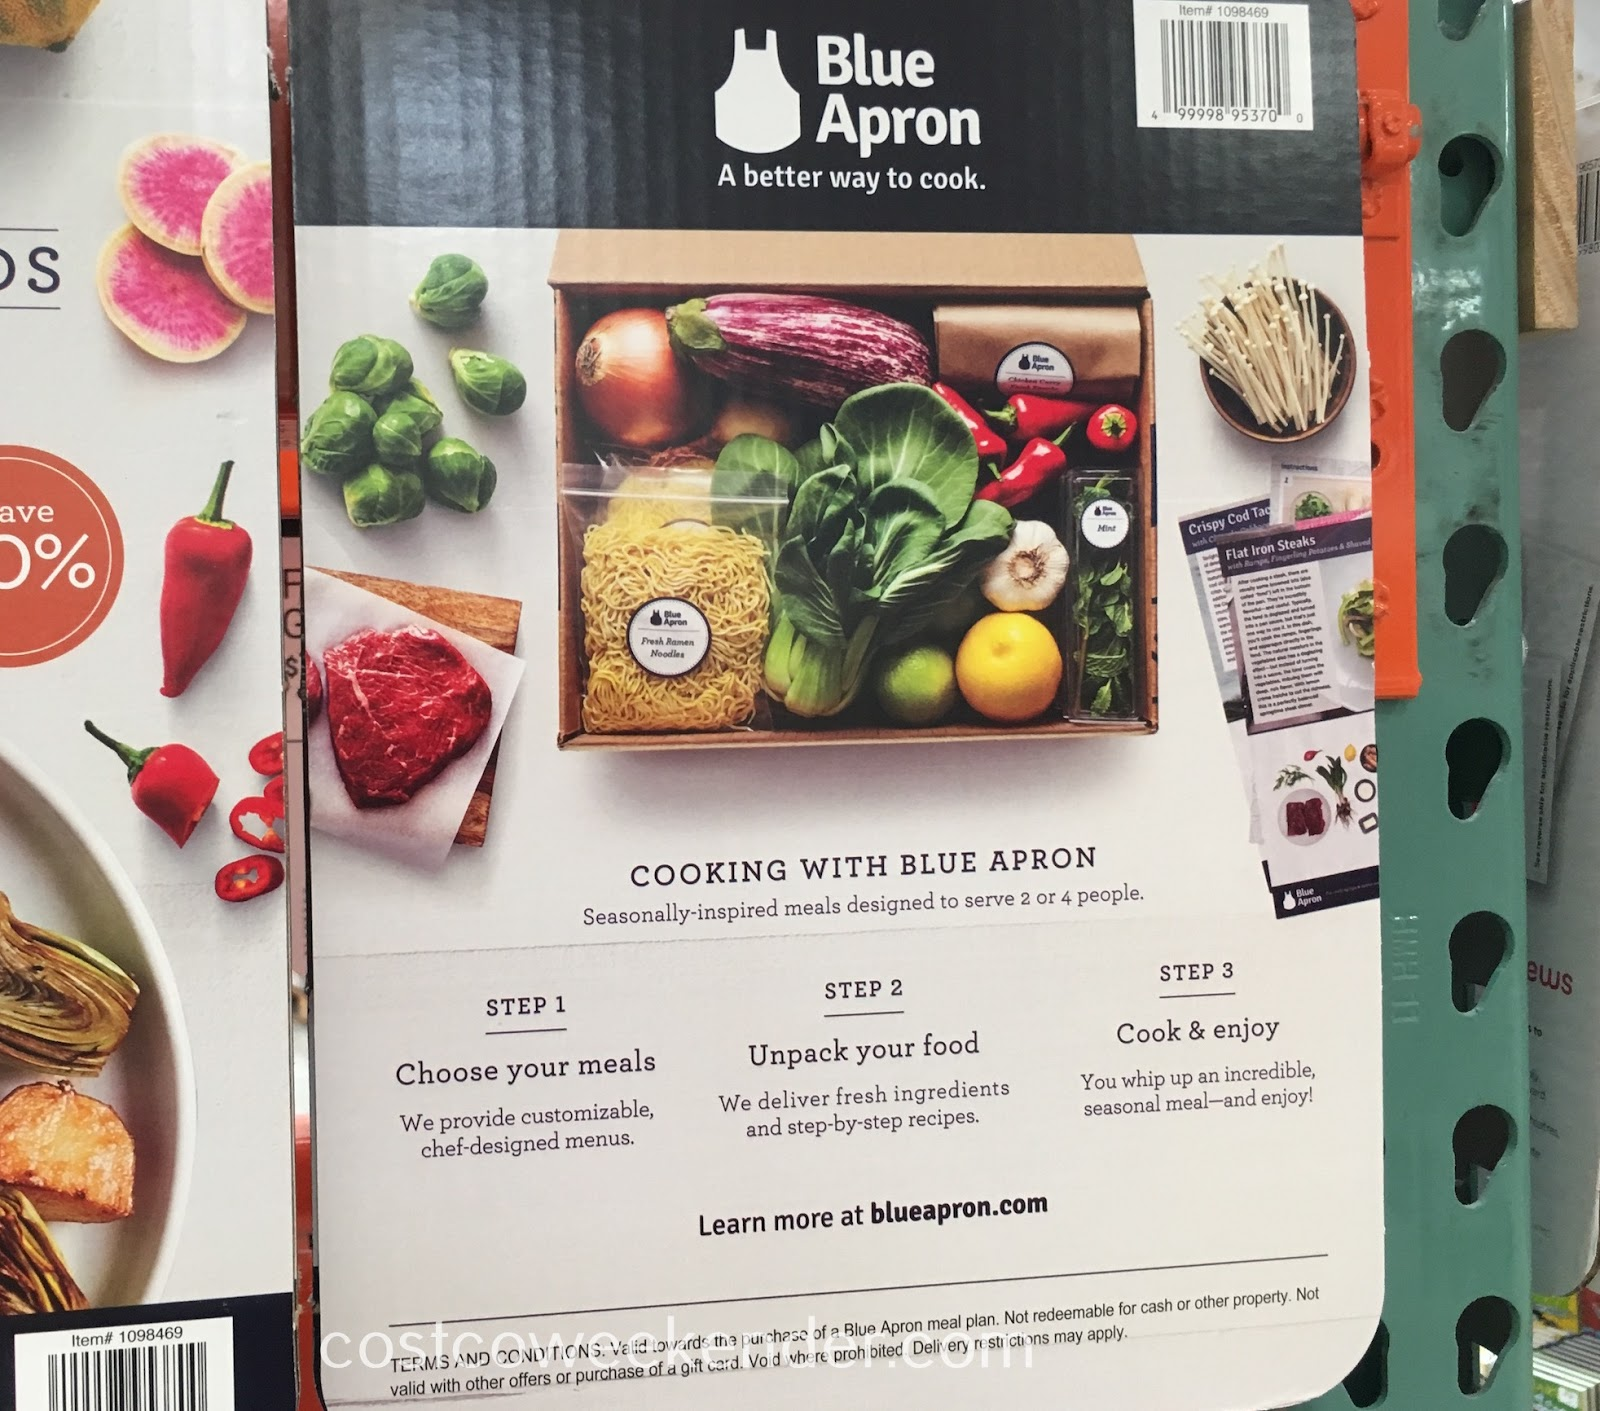 Costco 1098469 - Blue Apron: saves you the time of shopping and food prep for a good, healthy meal